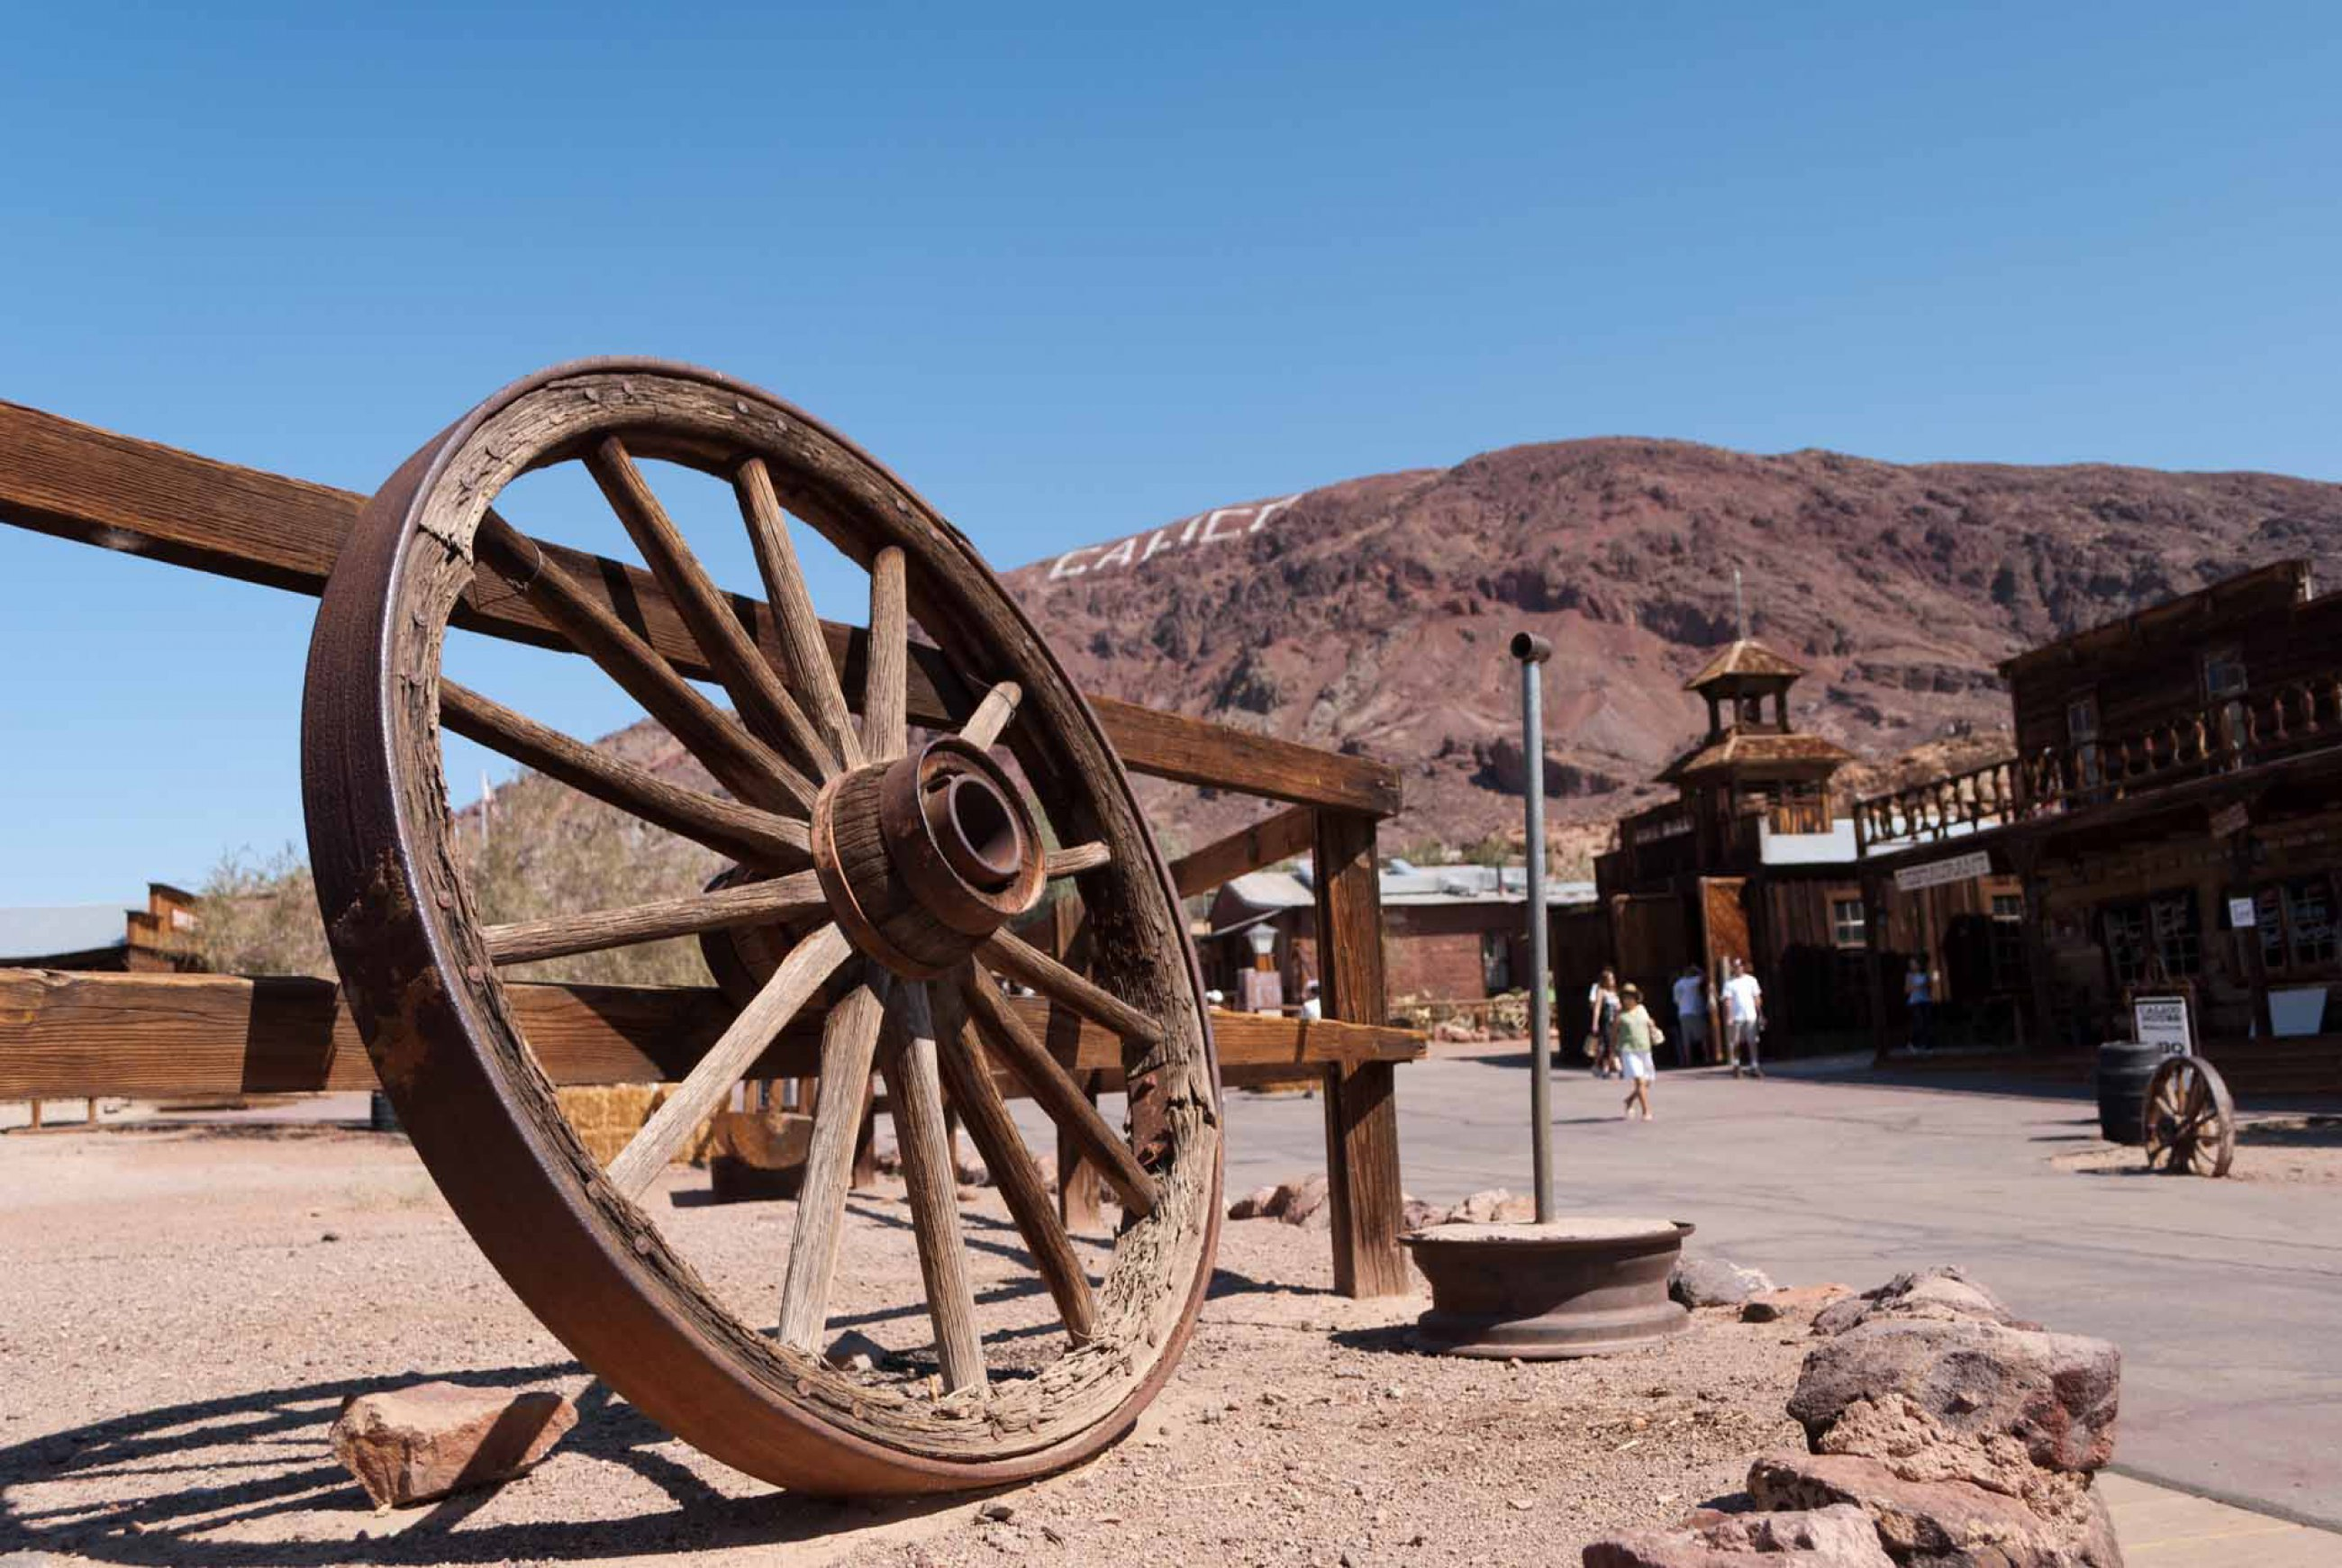 https://bubo.sk/uploads/galleries/7324/calico-town-usa-dreamstime-xl-18854022.jpg